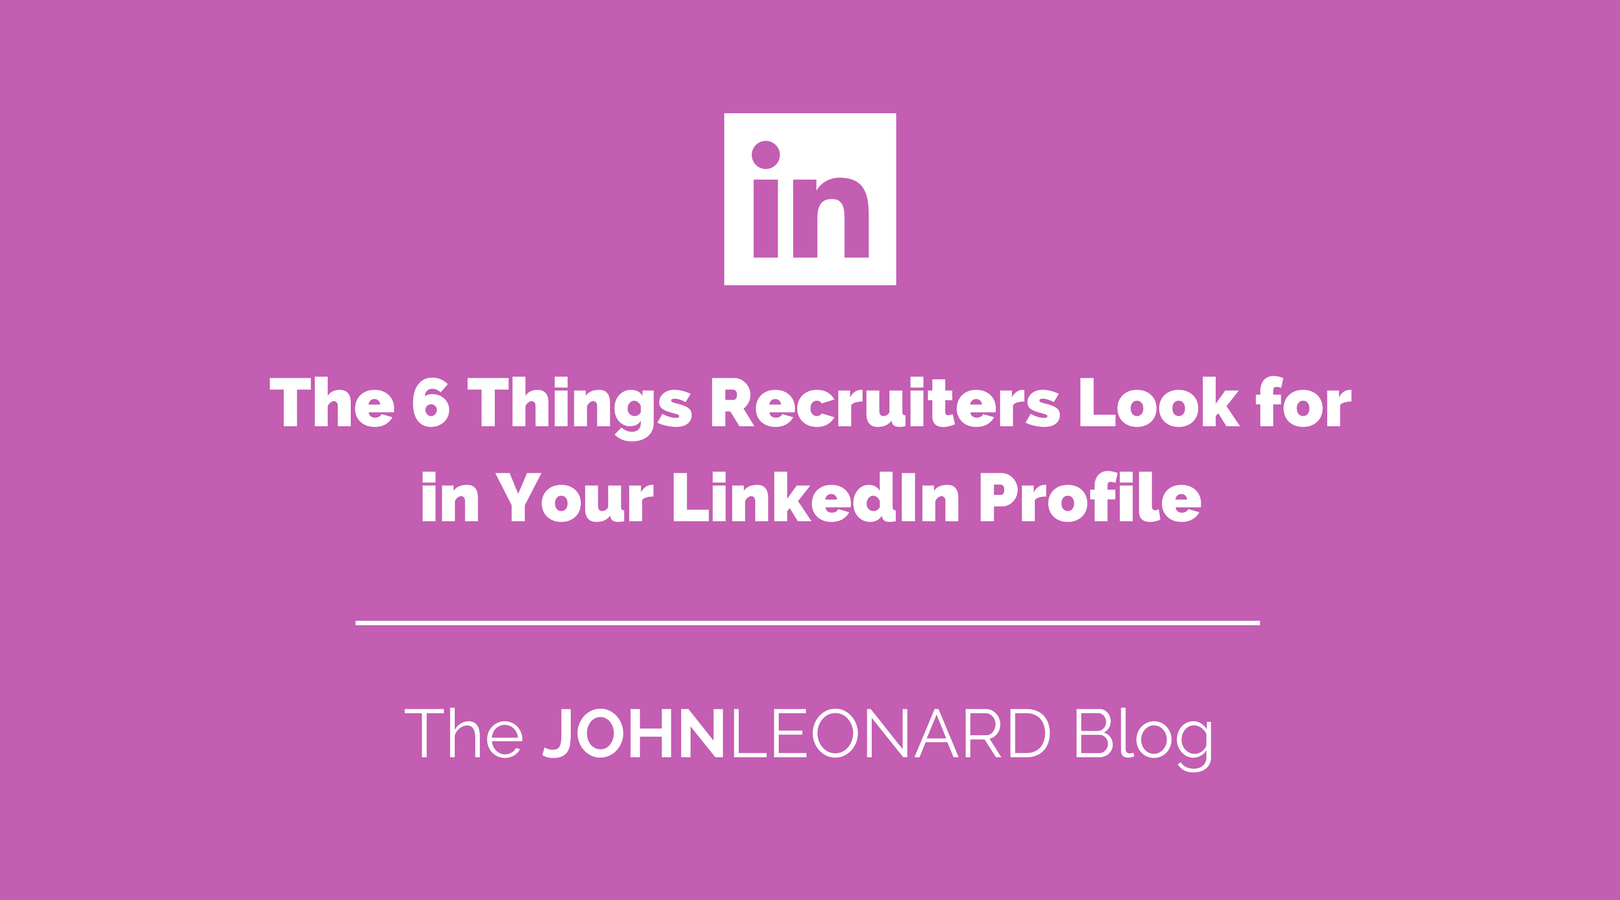 The 6 Things Recruiters Look for in Your LinkedIn Profile-1